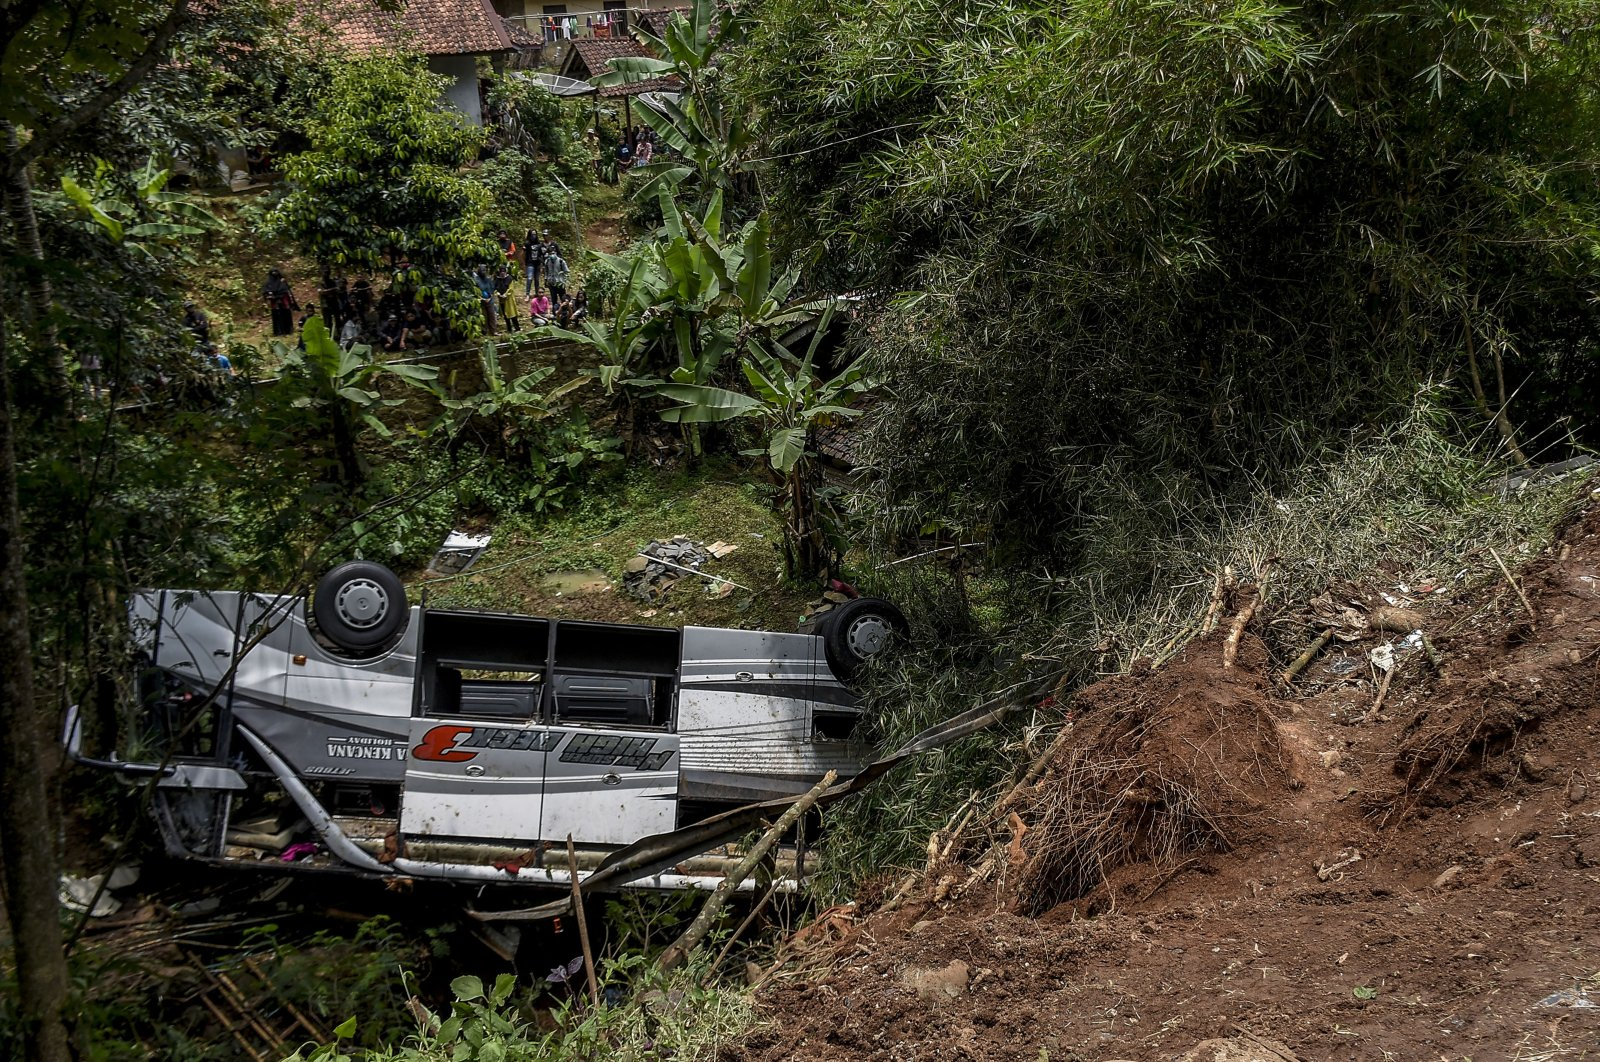 Residents inspect the wreckage of a bus that plunged into a ravine in Sumedang West Java,  Indonesia, March 11, 2021. (AP Photo)